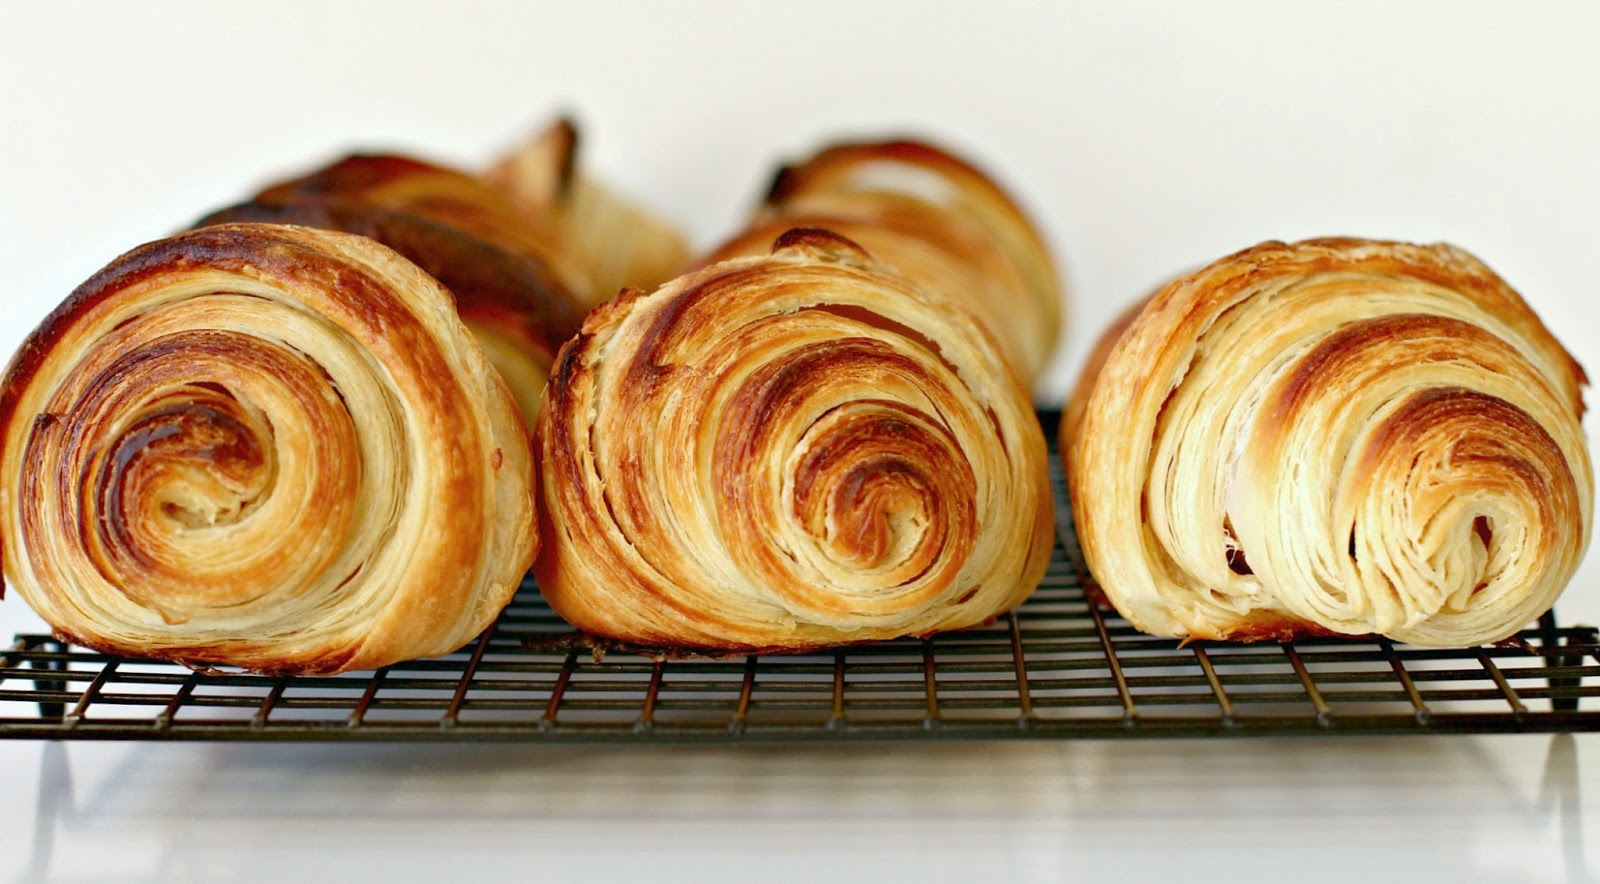 Milk and Honey: Croissants and Pains au Chocolat